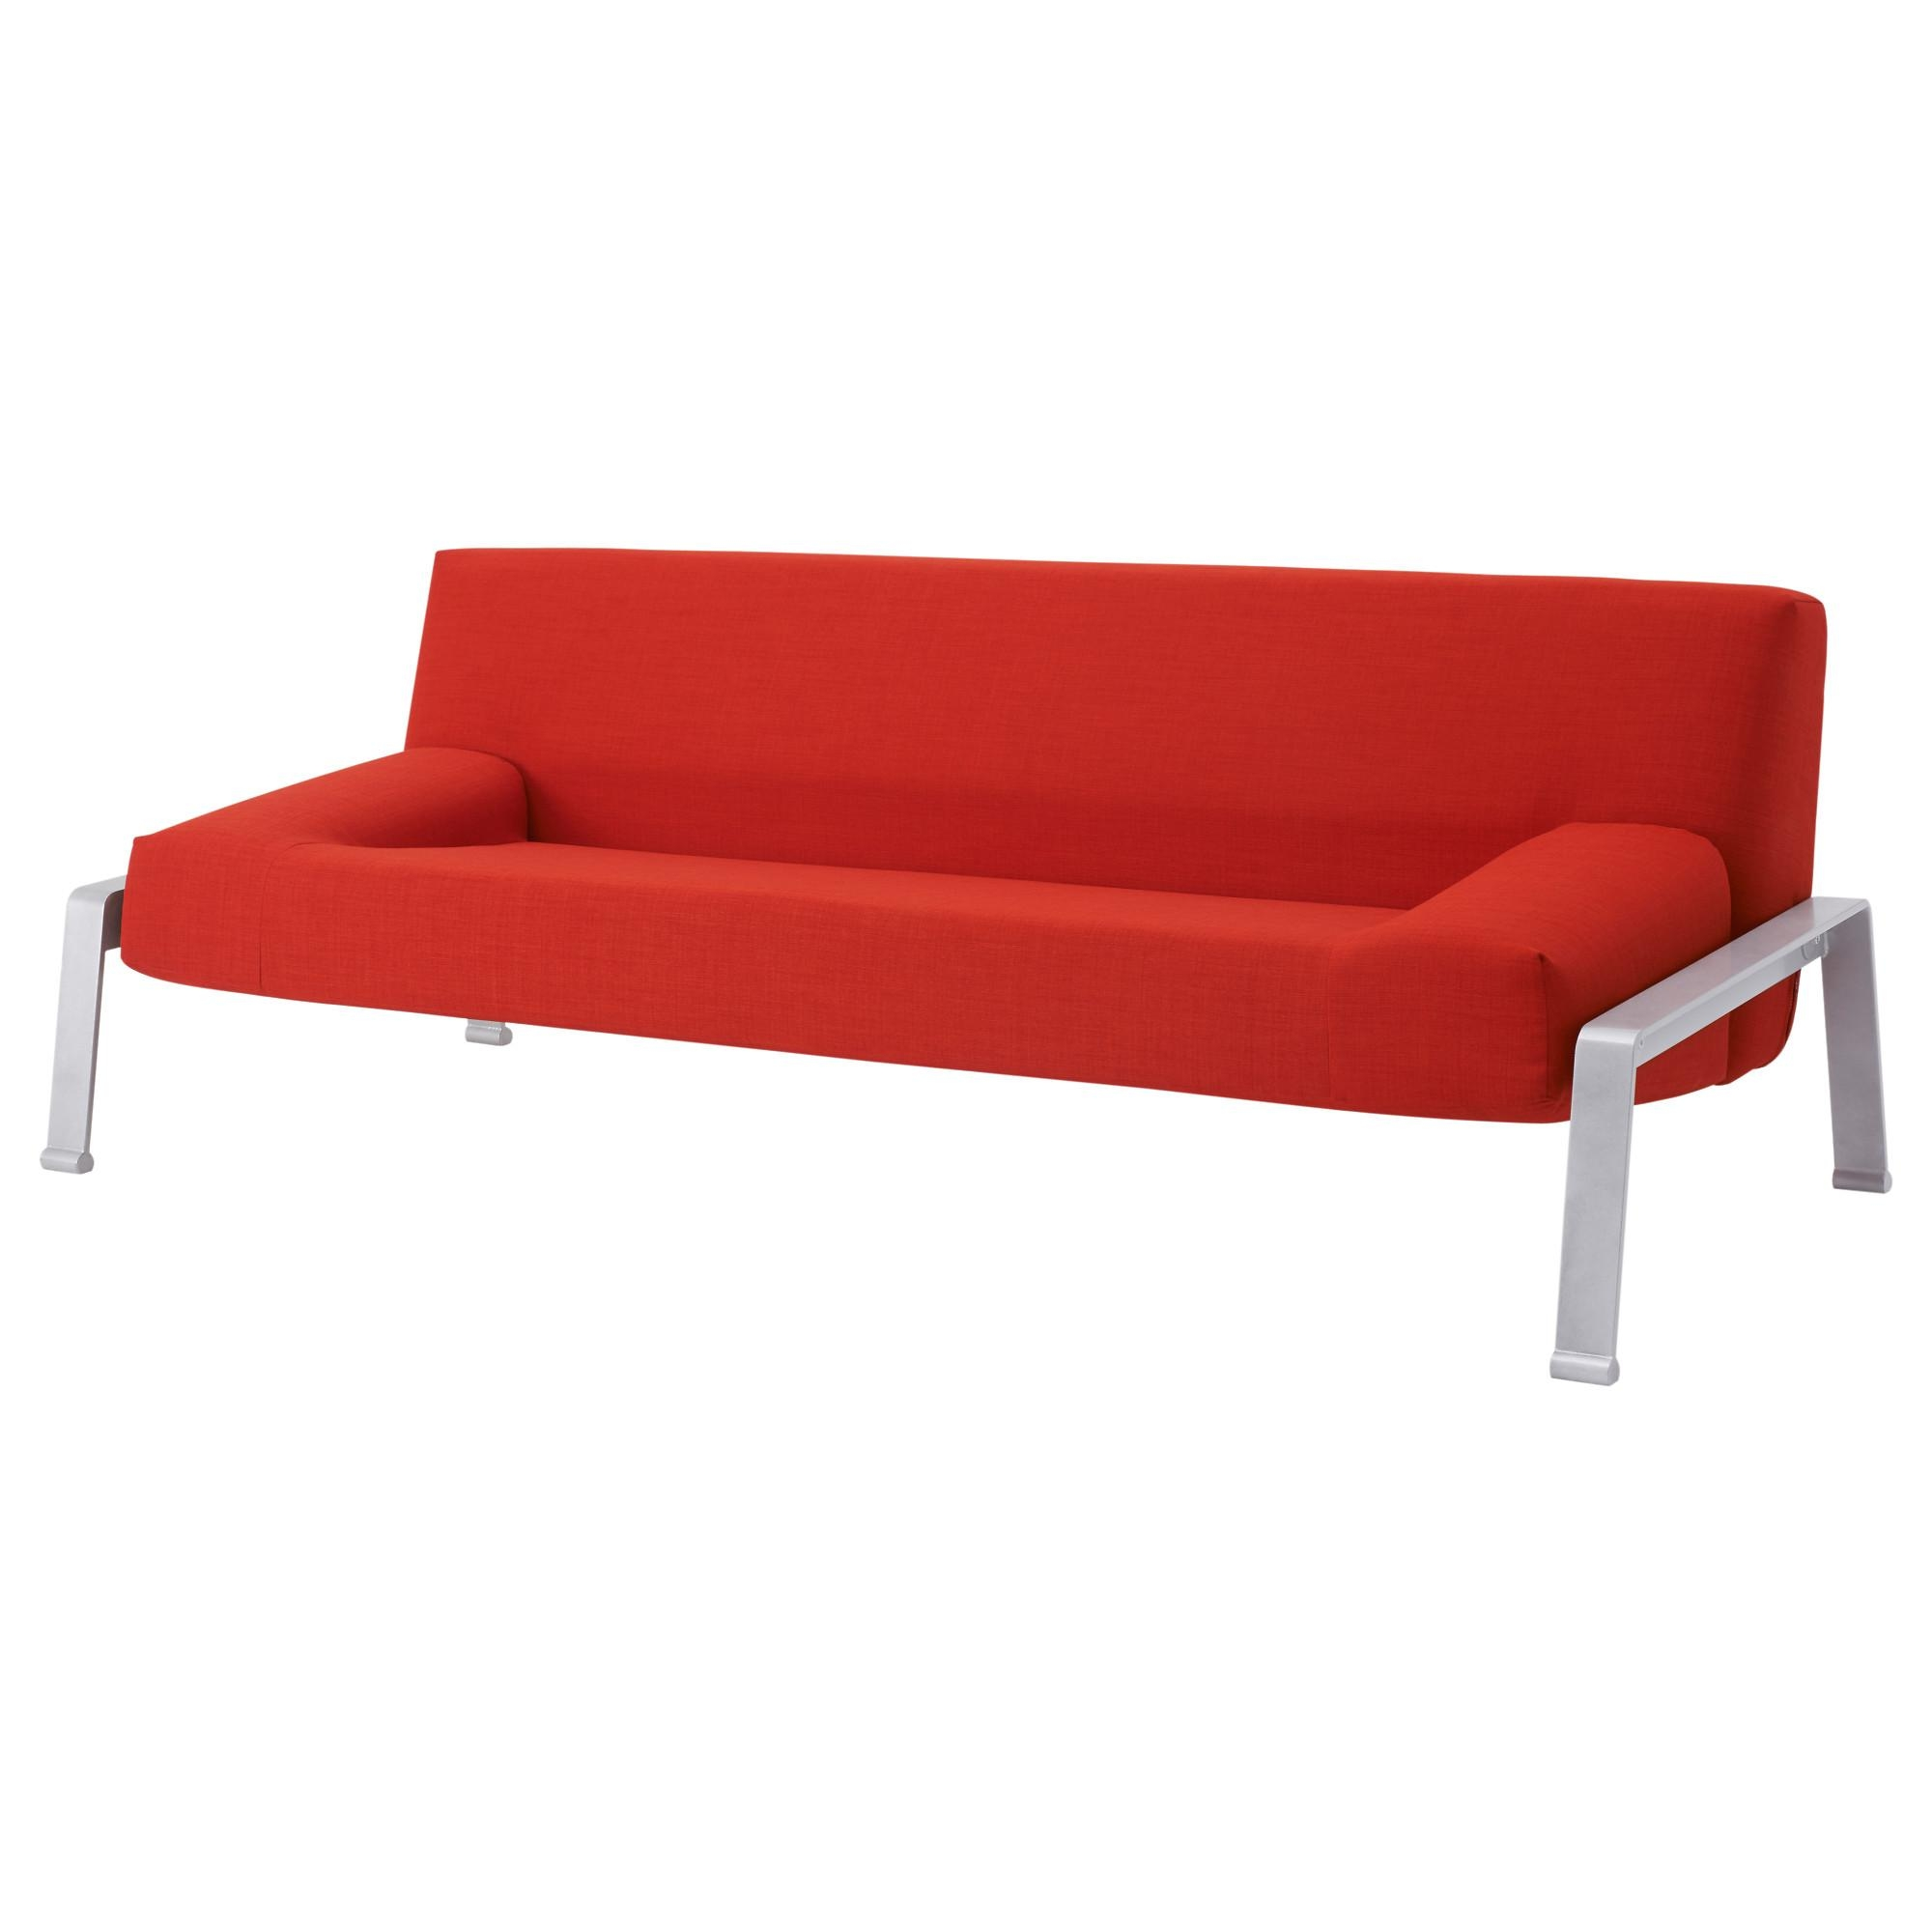 Sofa Beds & Futons – Ikea Pertaining To Red Sectional Sleeper Sofas (Image 18 of 22)